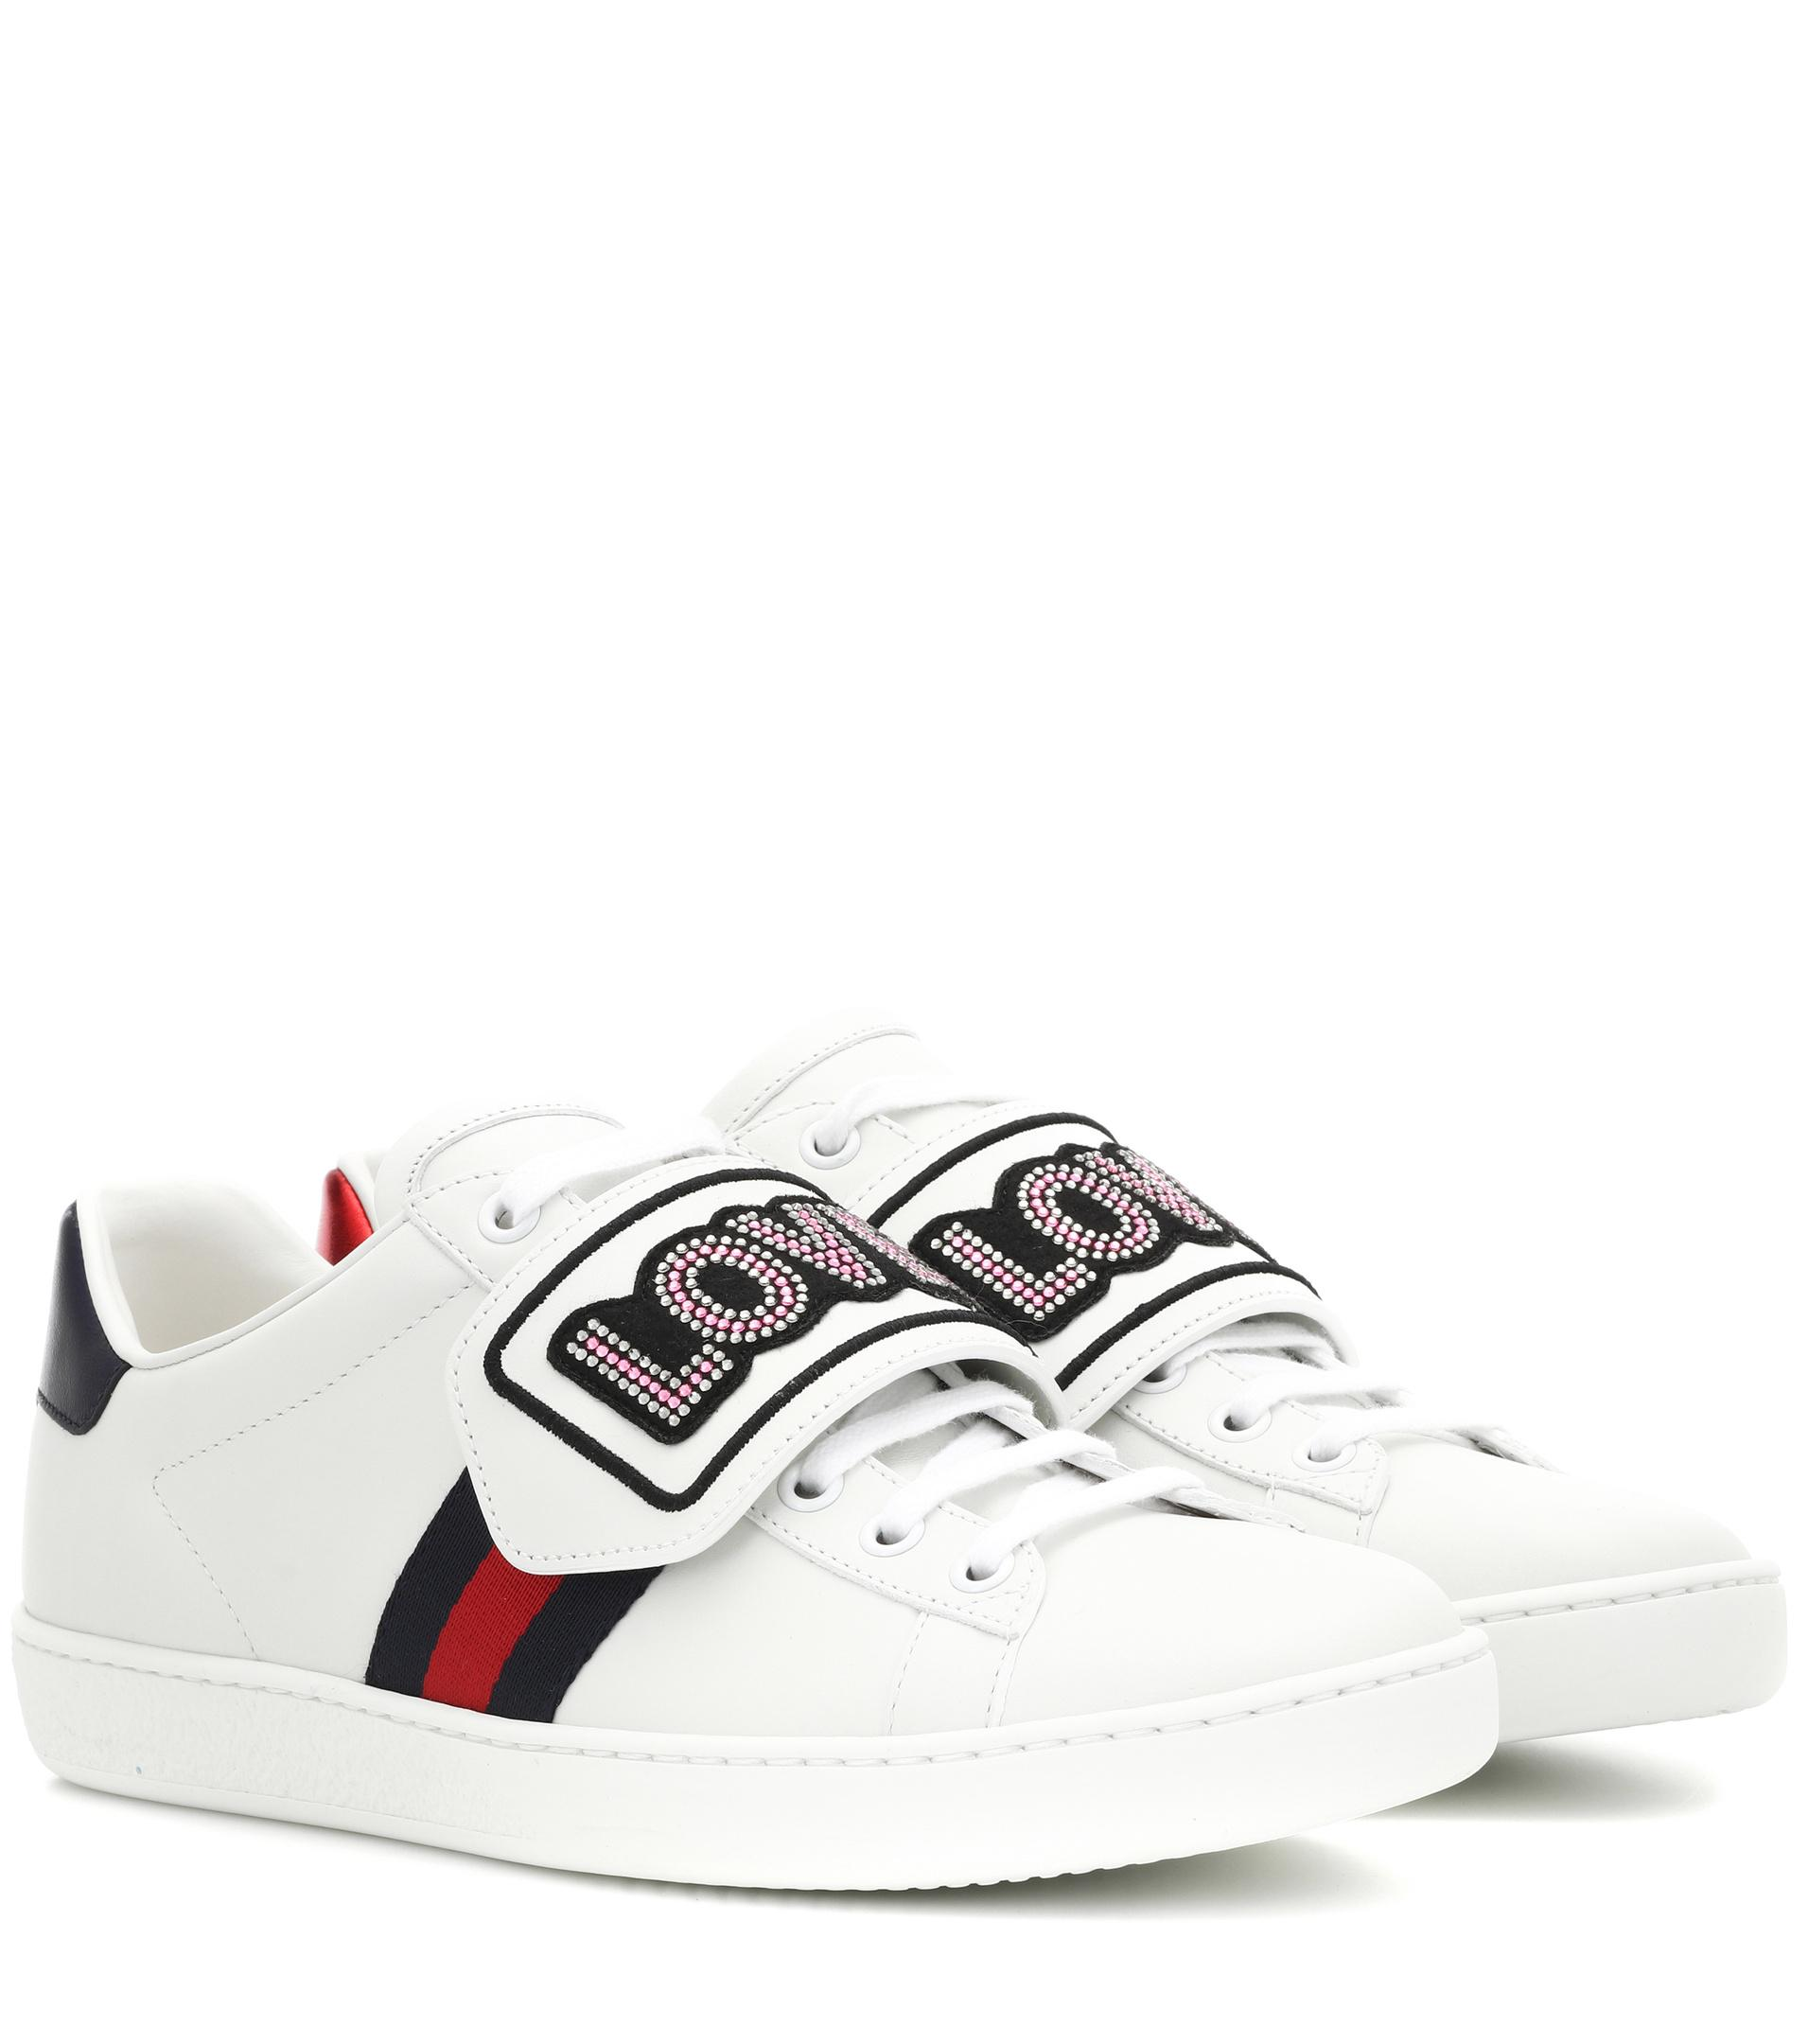 Sneaker ACE Kalbsleder Gucci Webdetails Logo Patch weiß Gucci iQcqrEe